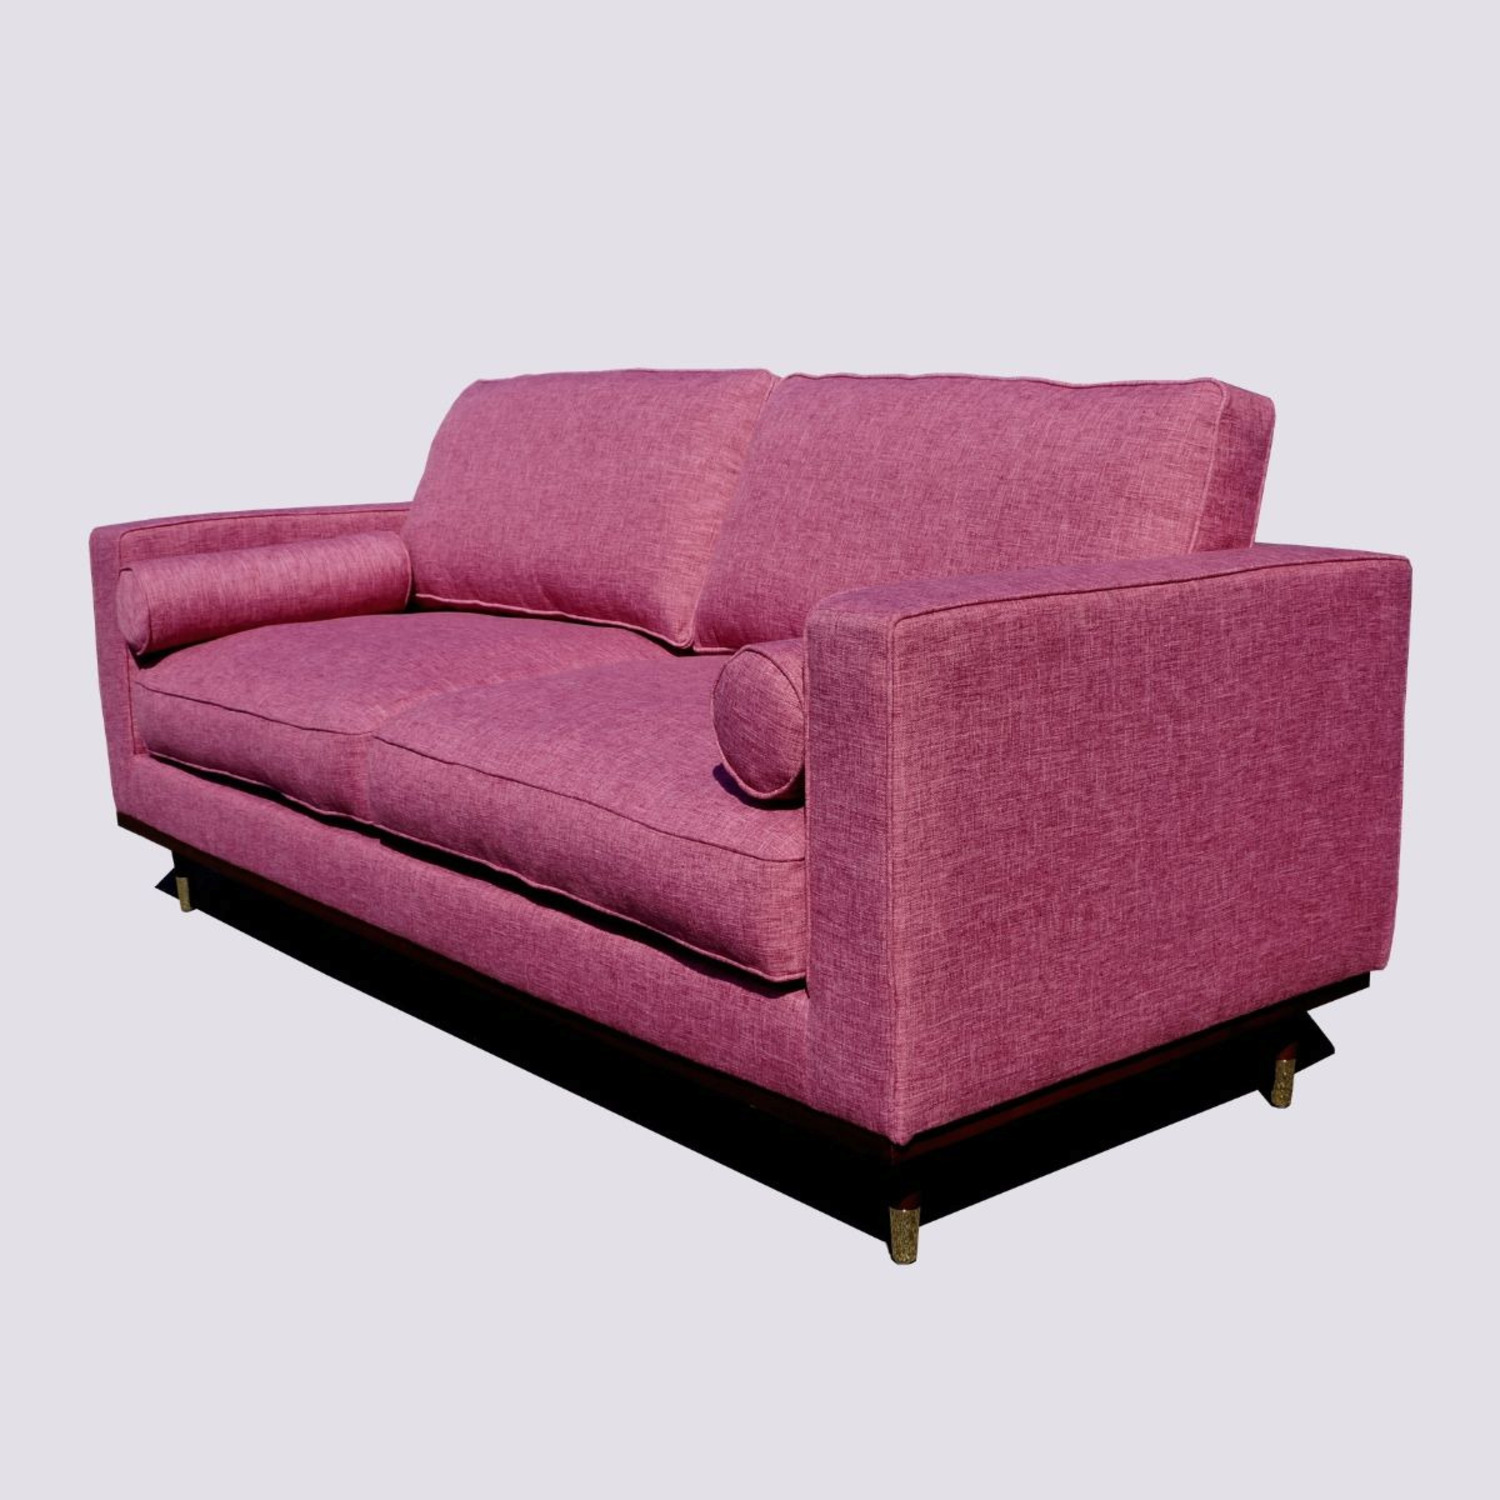 Brooklyn Space Introspect Mid-Century Modern Sofa - image-2